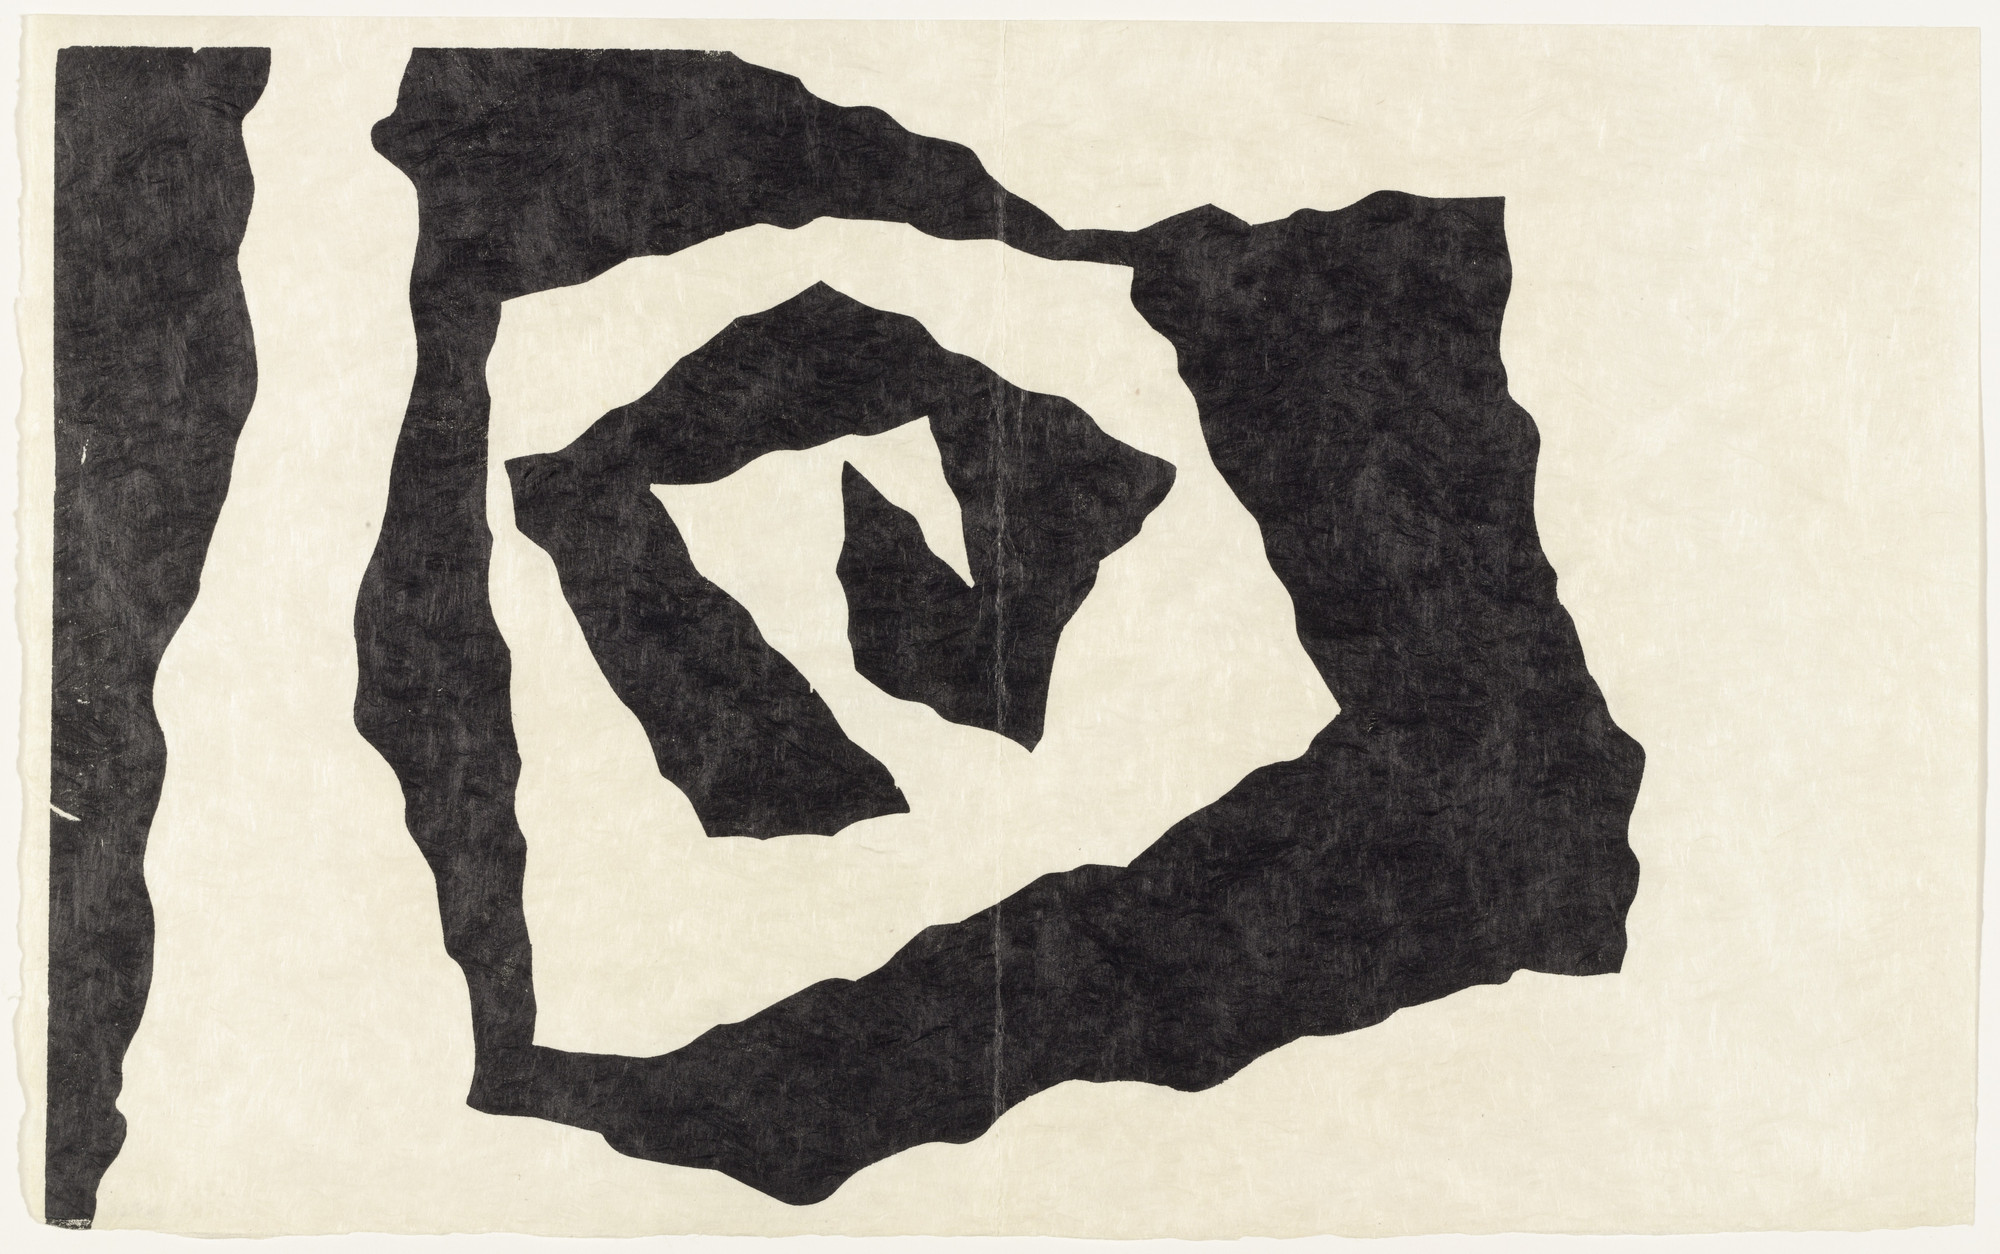 Jean (Hans) Arp. Fragment of a Flower-Bed (plate, supplementary suite) from Dream and Projects. 1951–52, published 1952